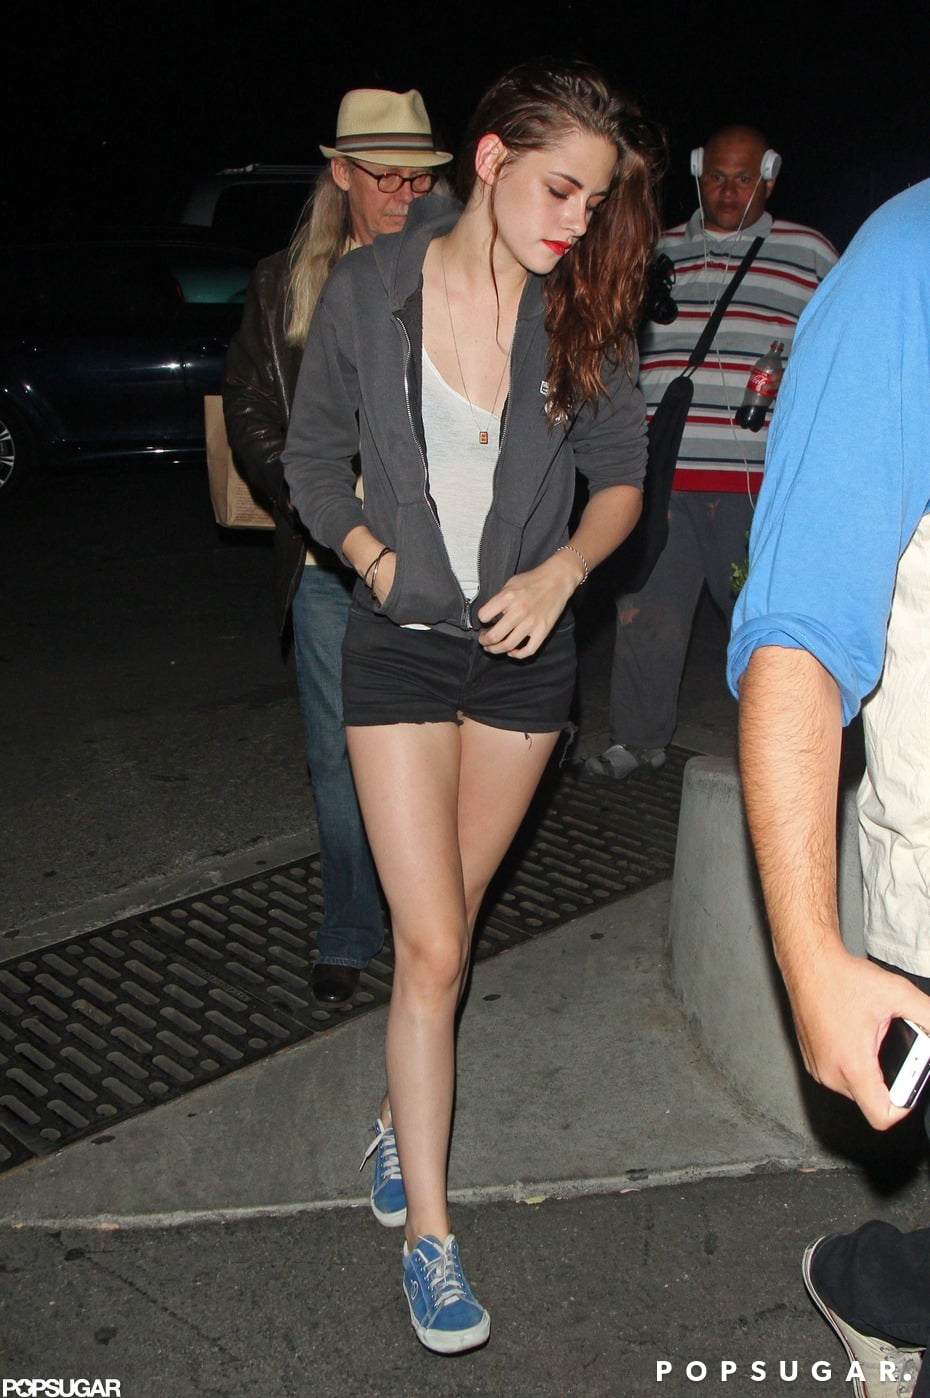 Kristen Stewart showed off her legs at a Florence and the Machine concert.